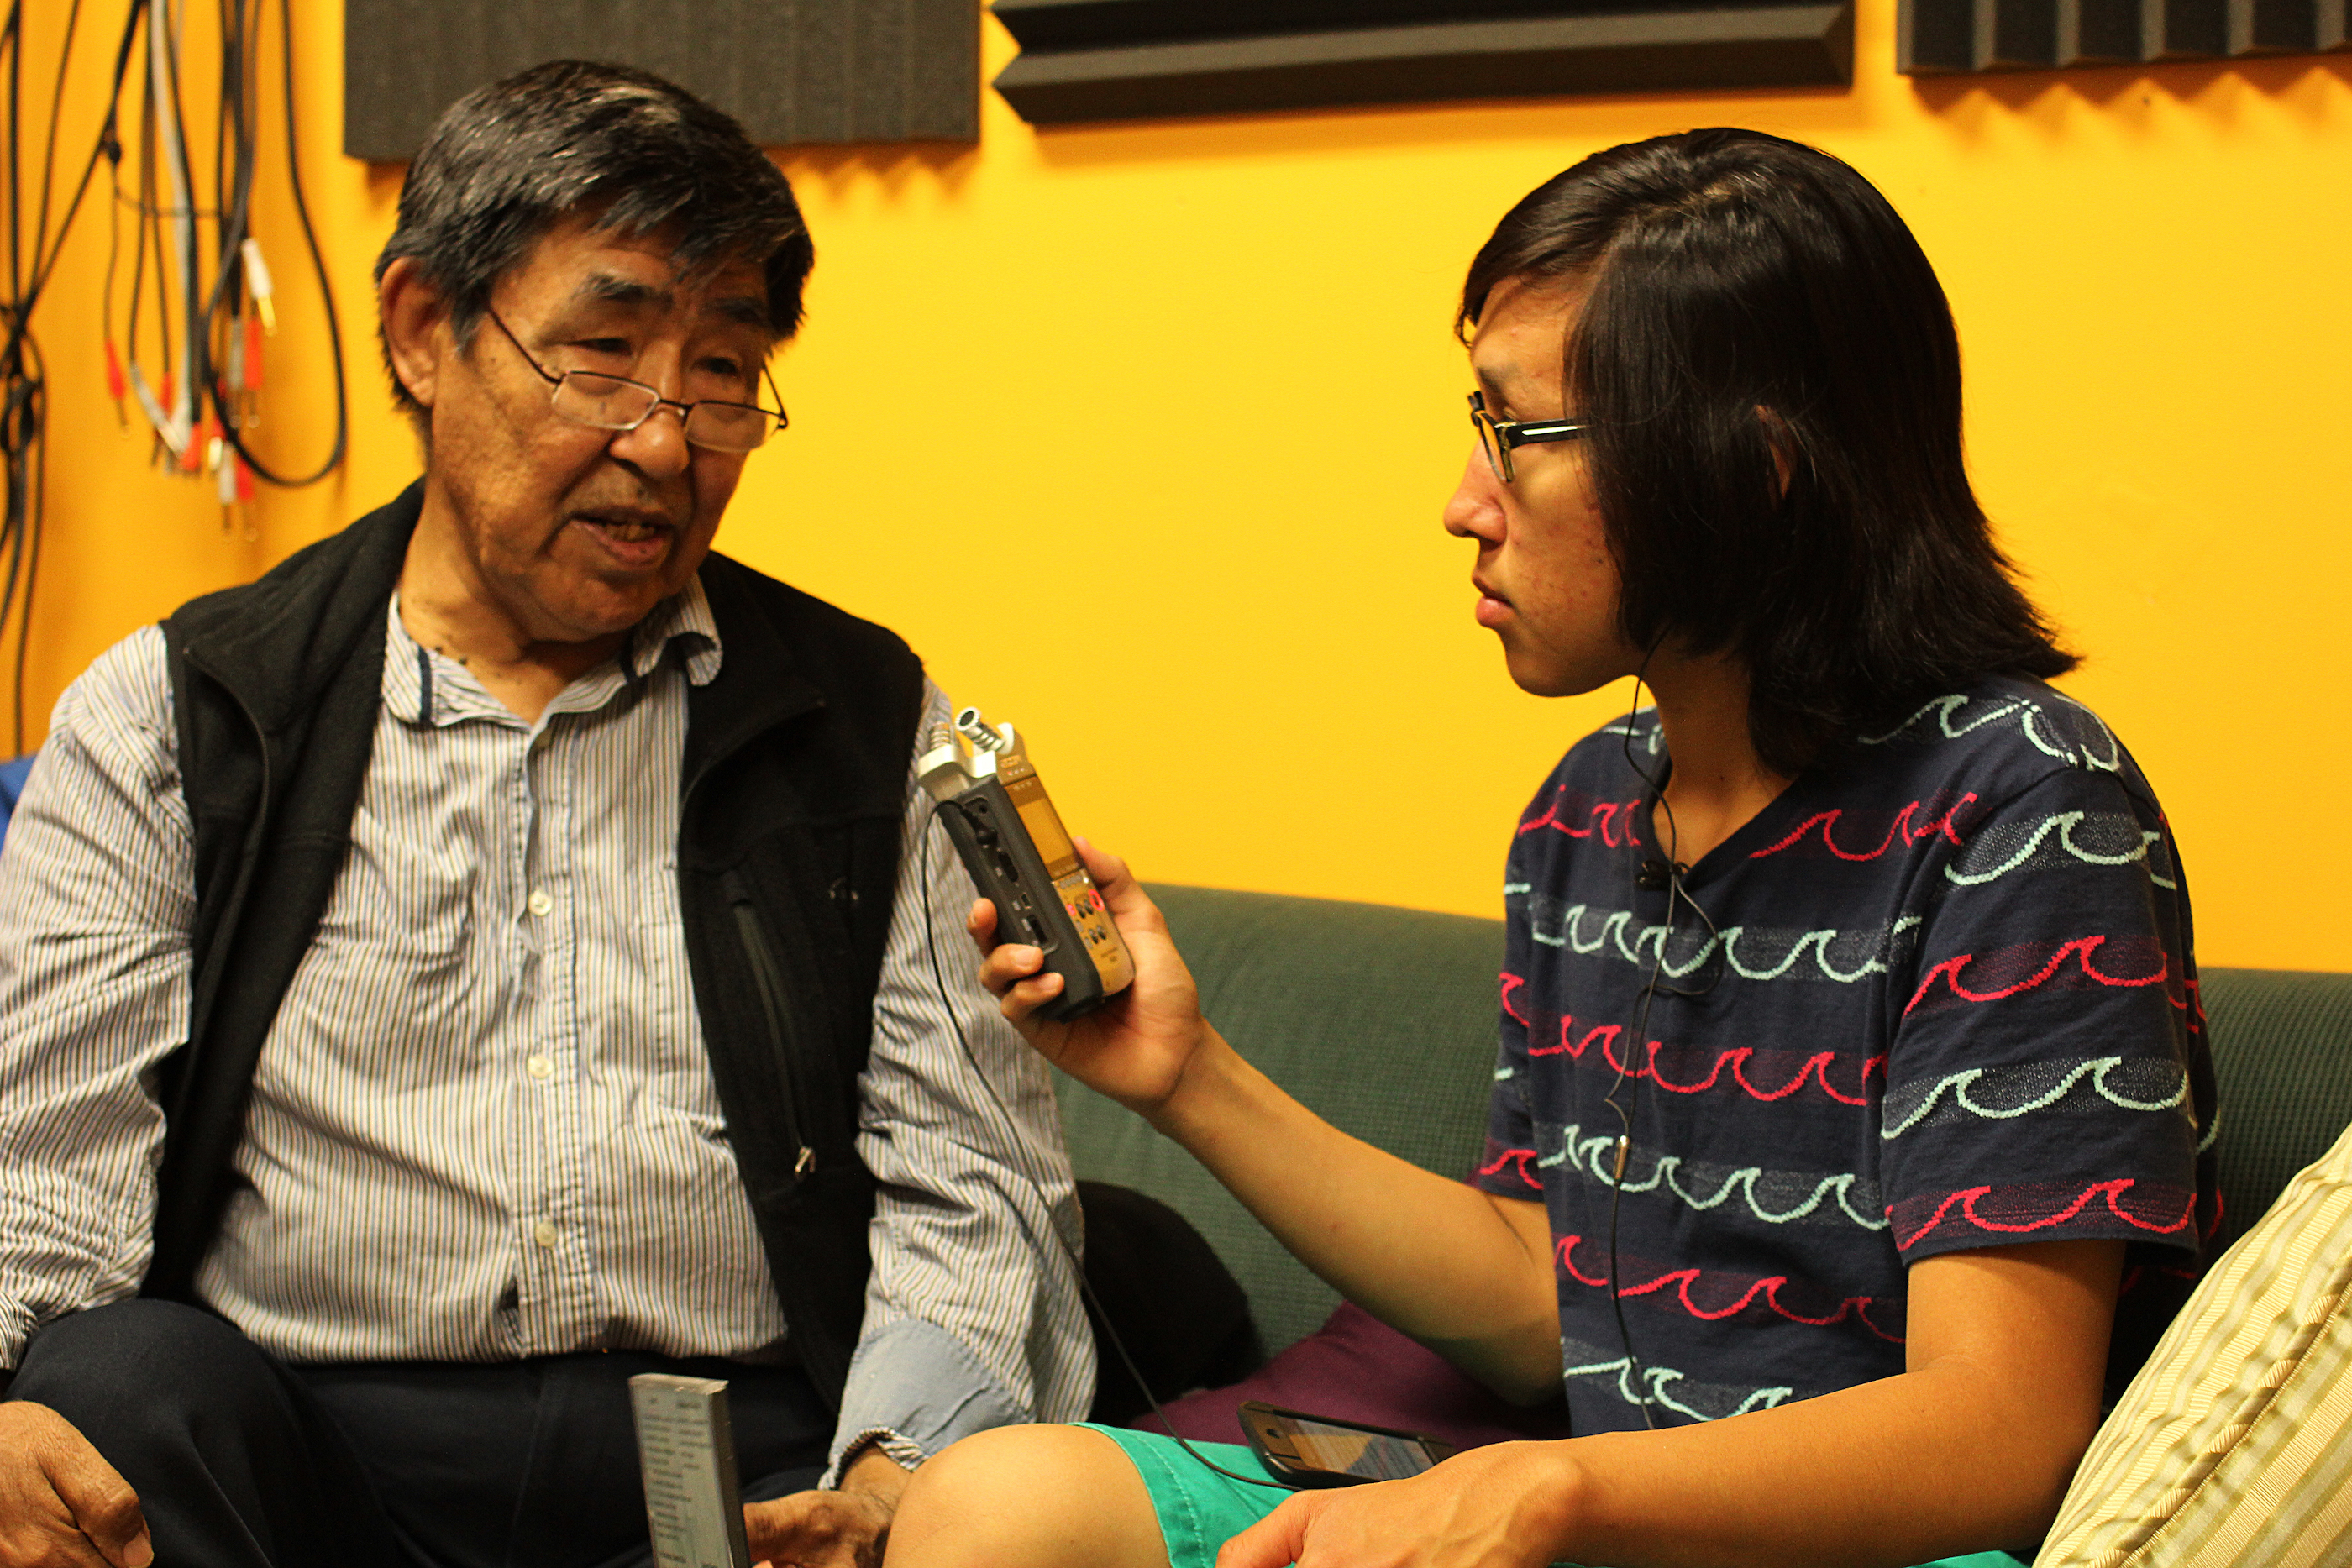 Mediak training from Alaska Federation of Natives: Youth and Elders Conference. Provided by Koahnic Broadcast Corporation.